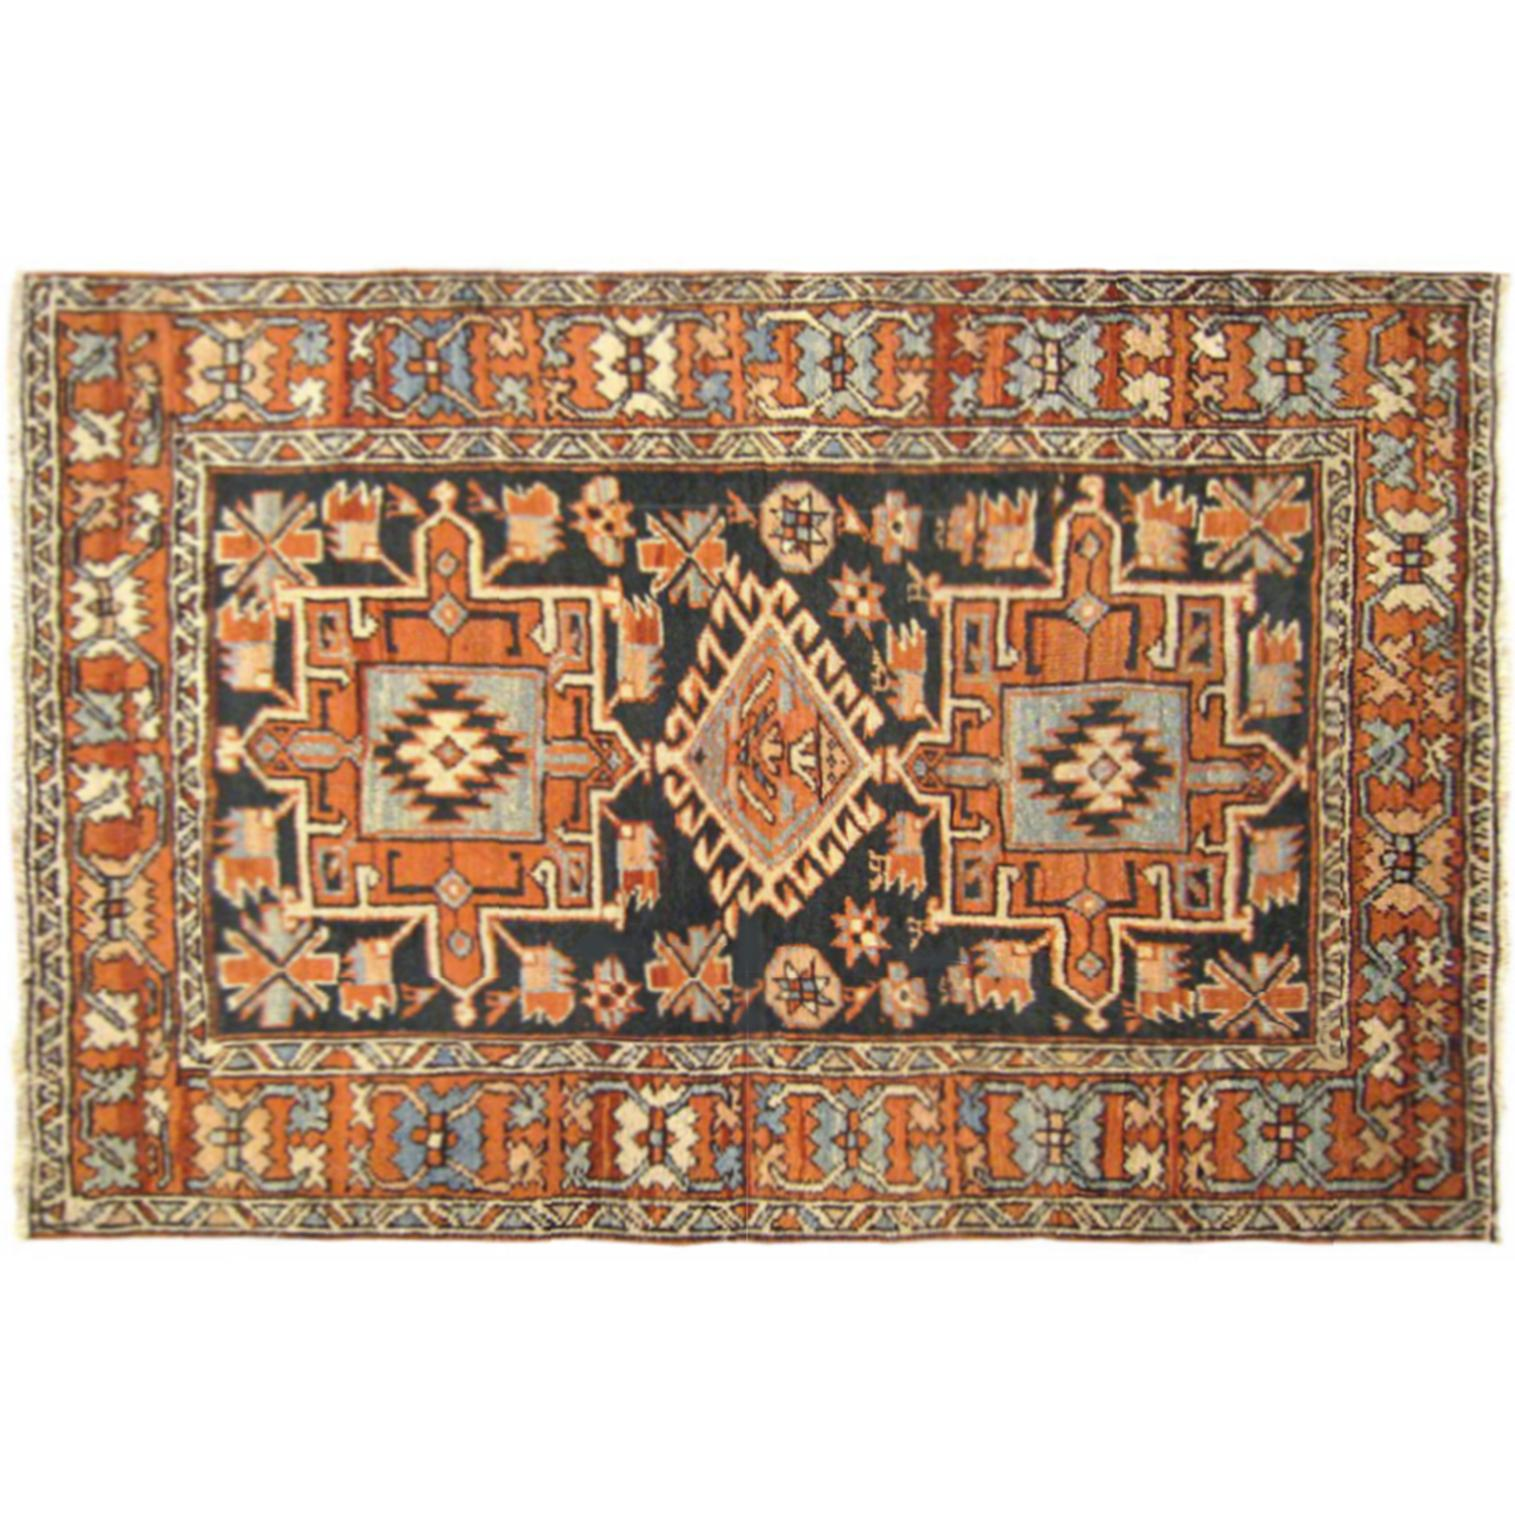 Beautiful Small Square Ter Size Antique Persian Kerman Rug Country Of Origin Persia Circa Date Turn The 20th Century Generally Speaking